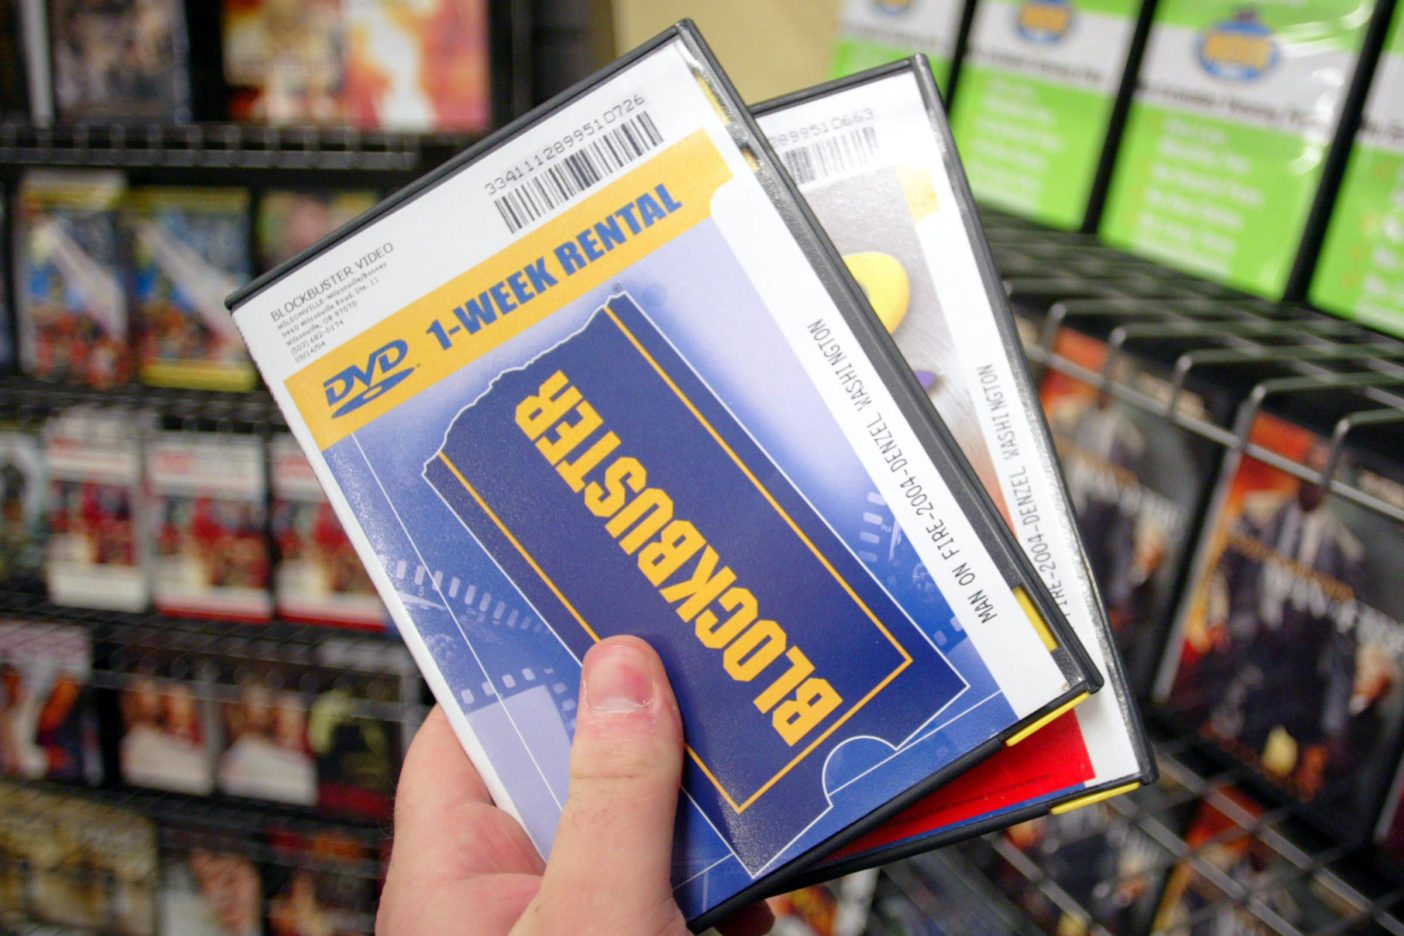 Blockbuster DVD cases